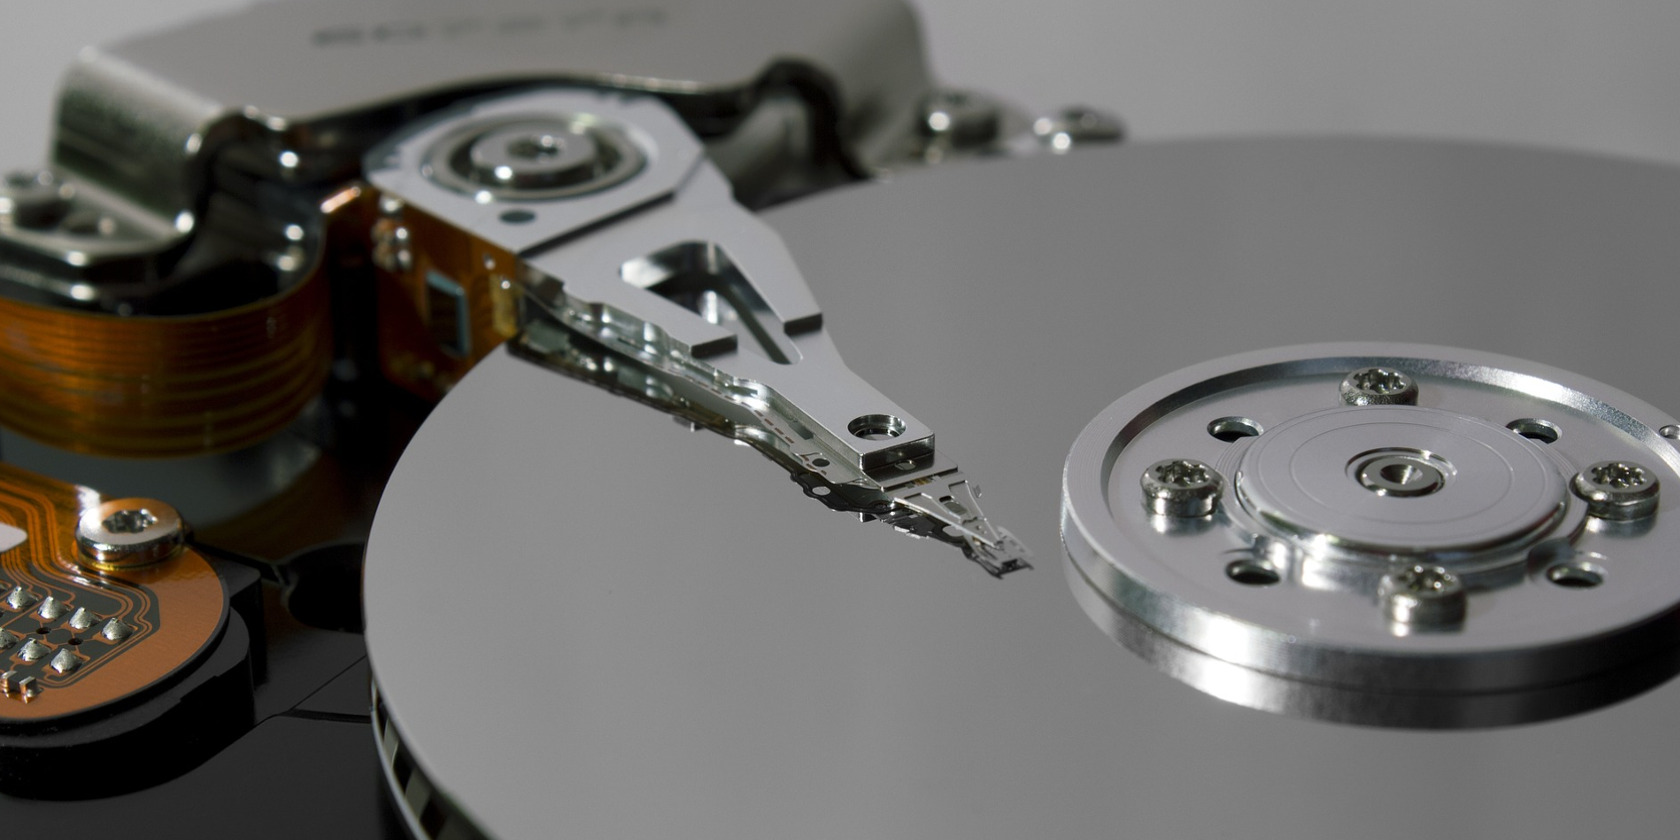 Showa Denko to Commence Prototype Production of Next-Generation HDD